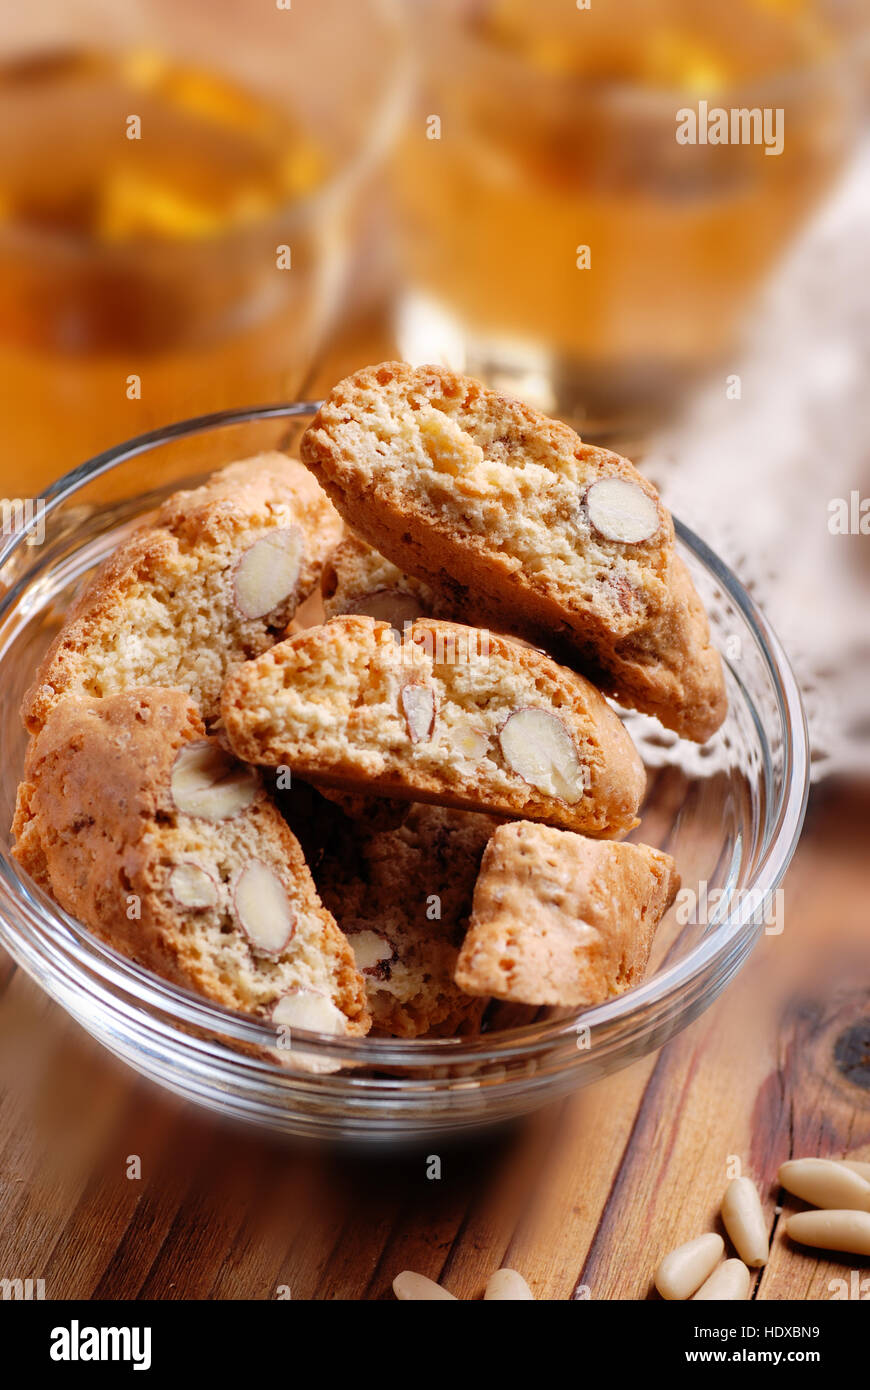 Cantucci cookies dans bol en verre - produits de confiserie traditionnelle Italienne Photo Stock